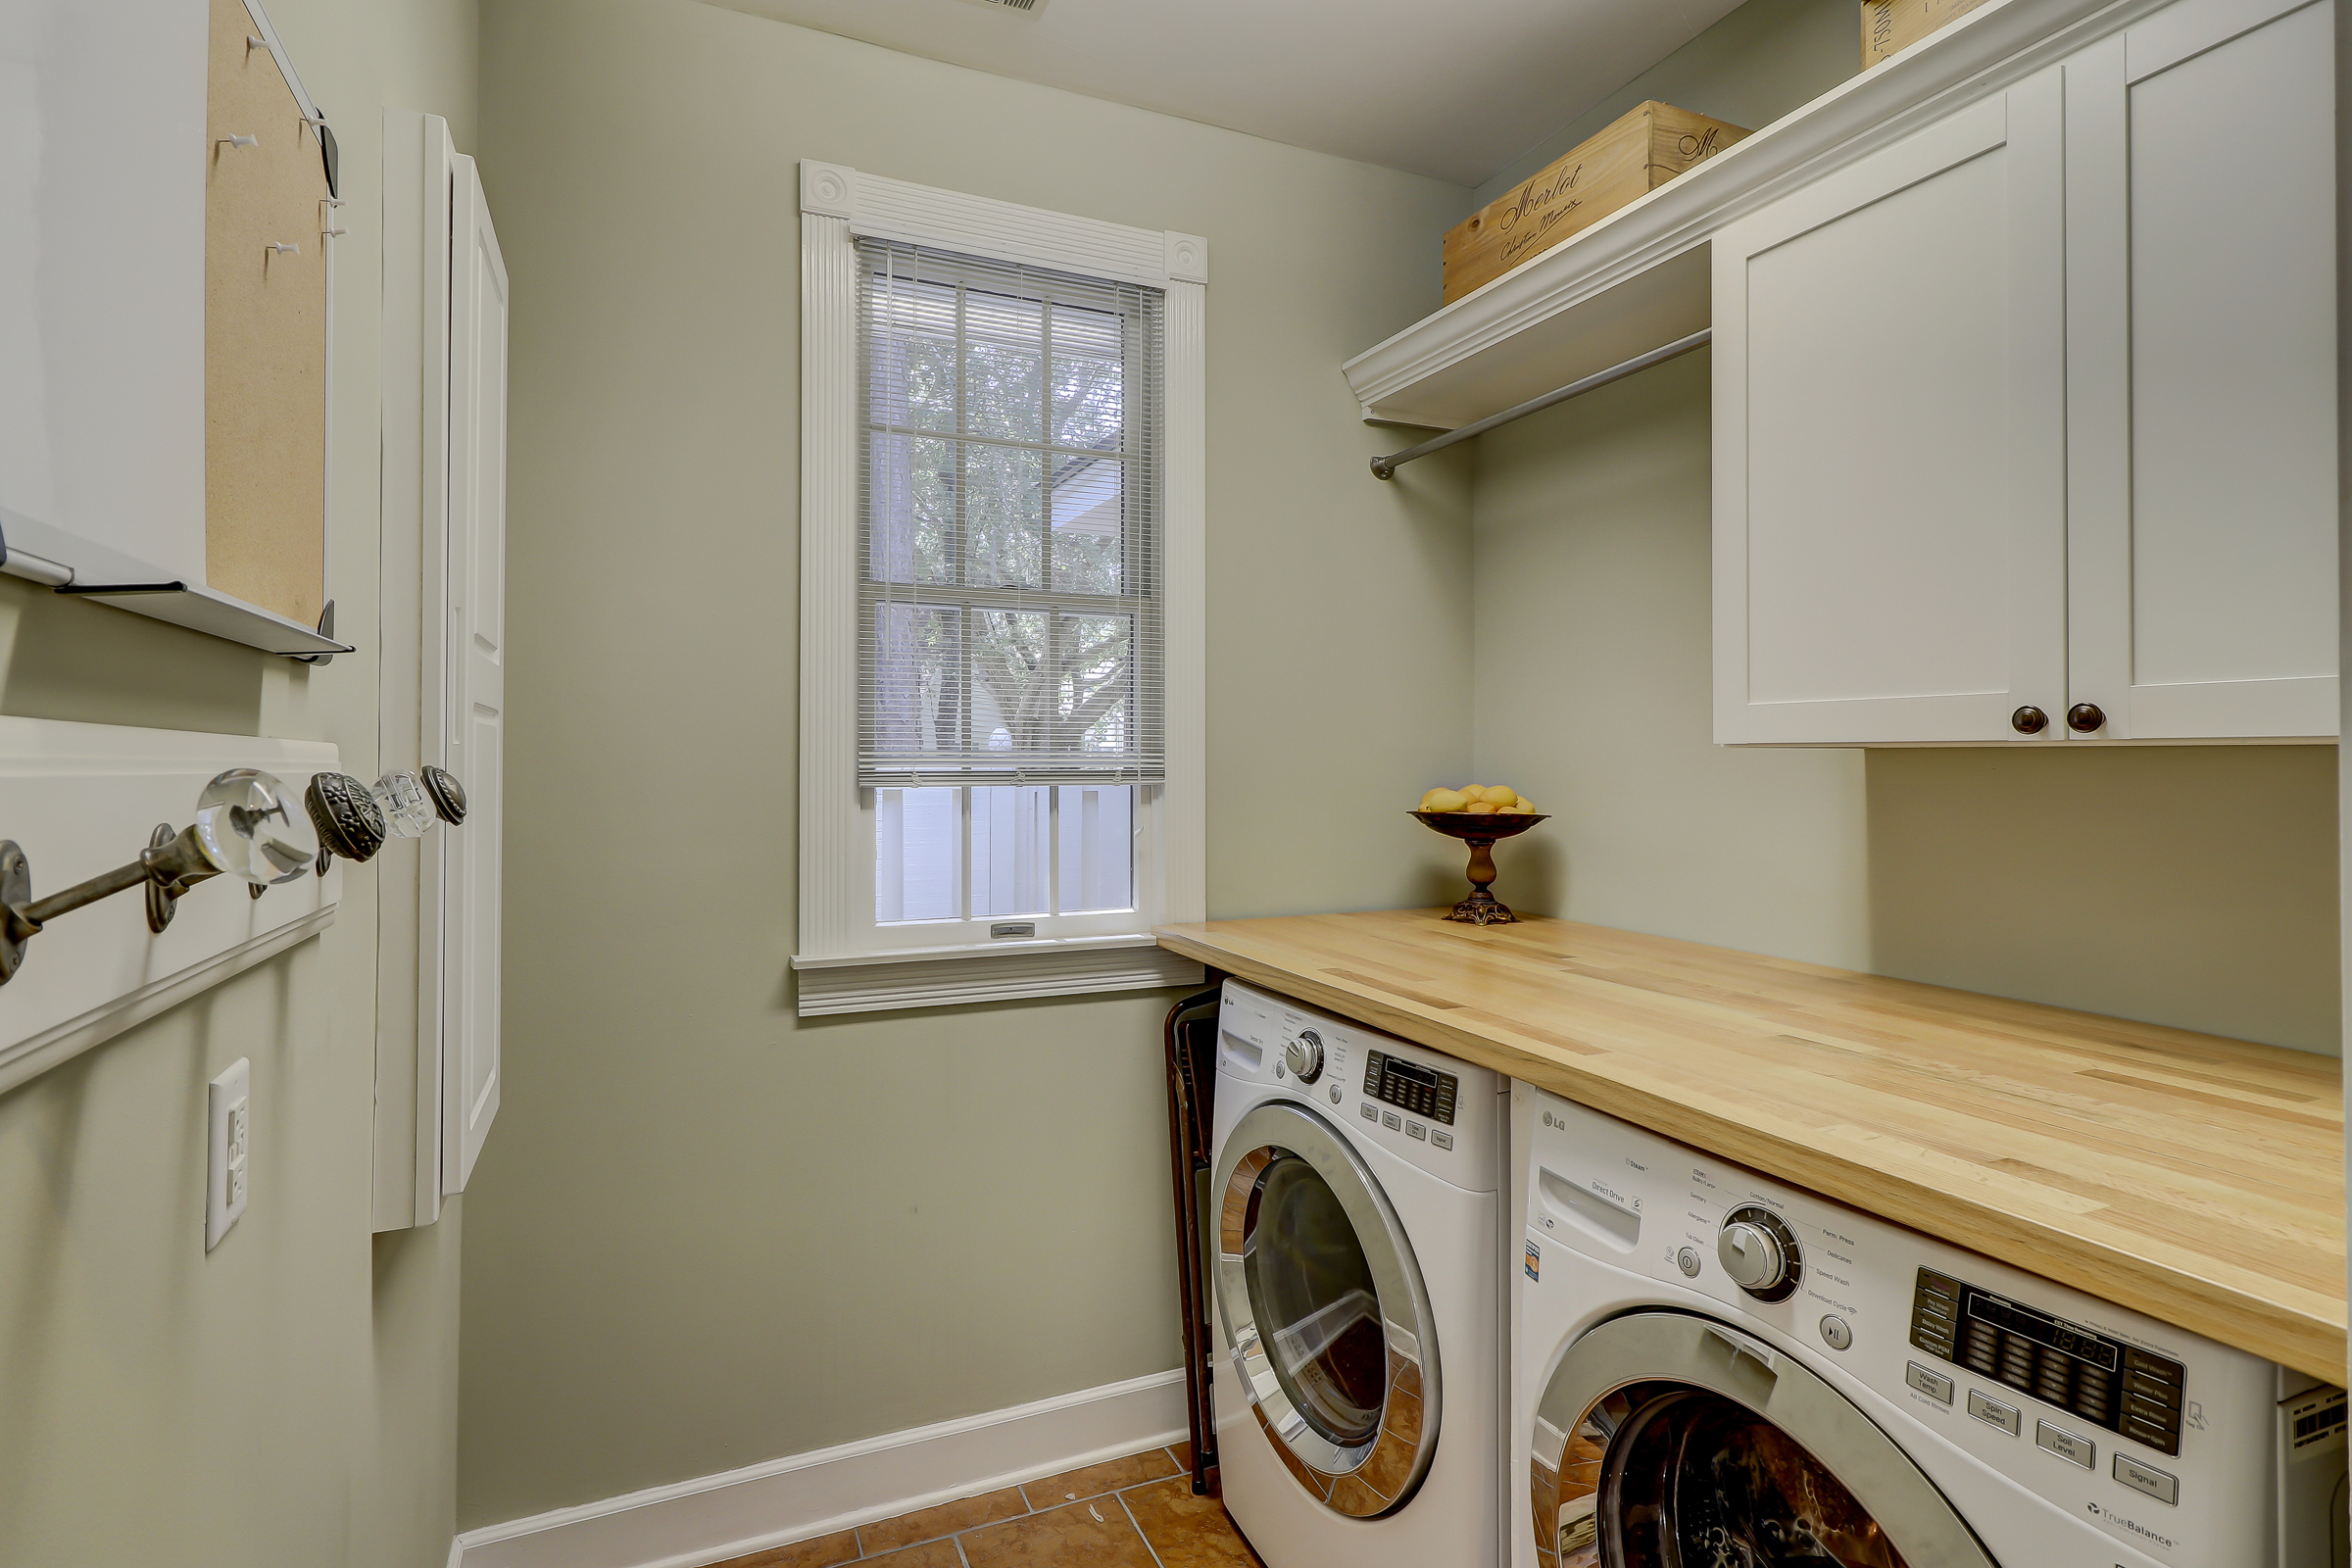 Under counter washer and dryer, butcher block counter, hanging space, wall cabinetry, natural light and built-in ironing board makes for the perfect laundry room.